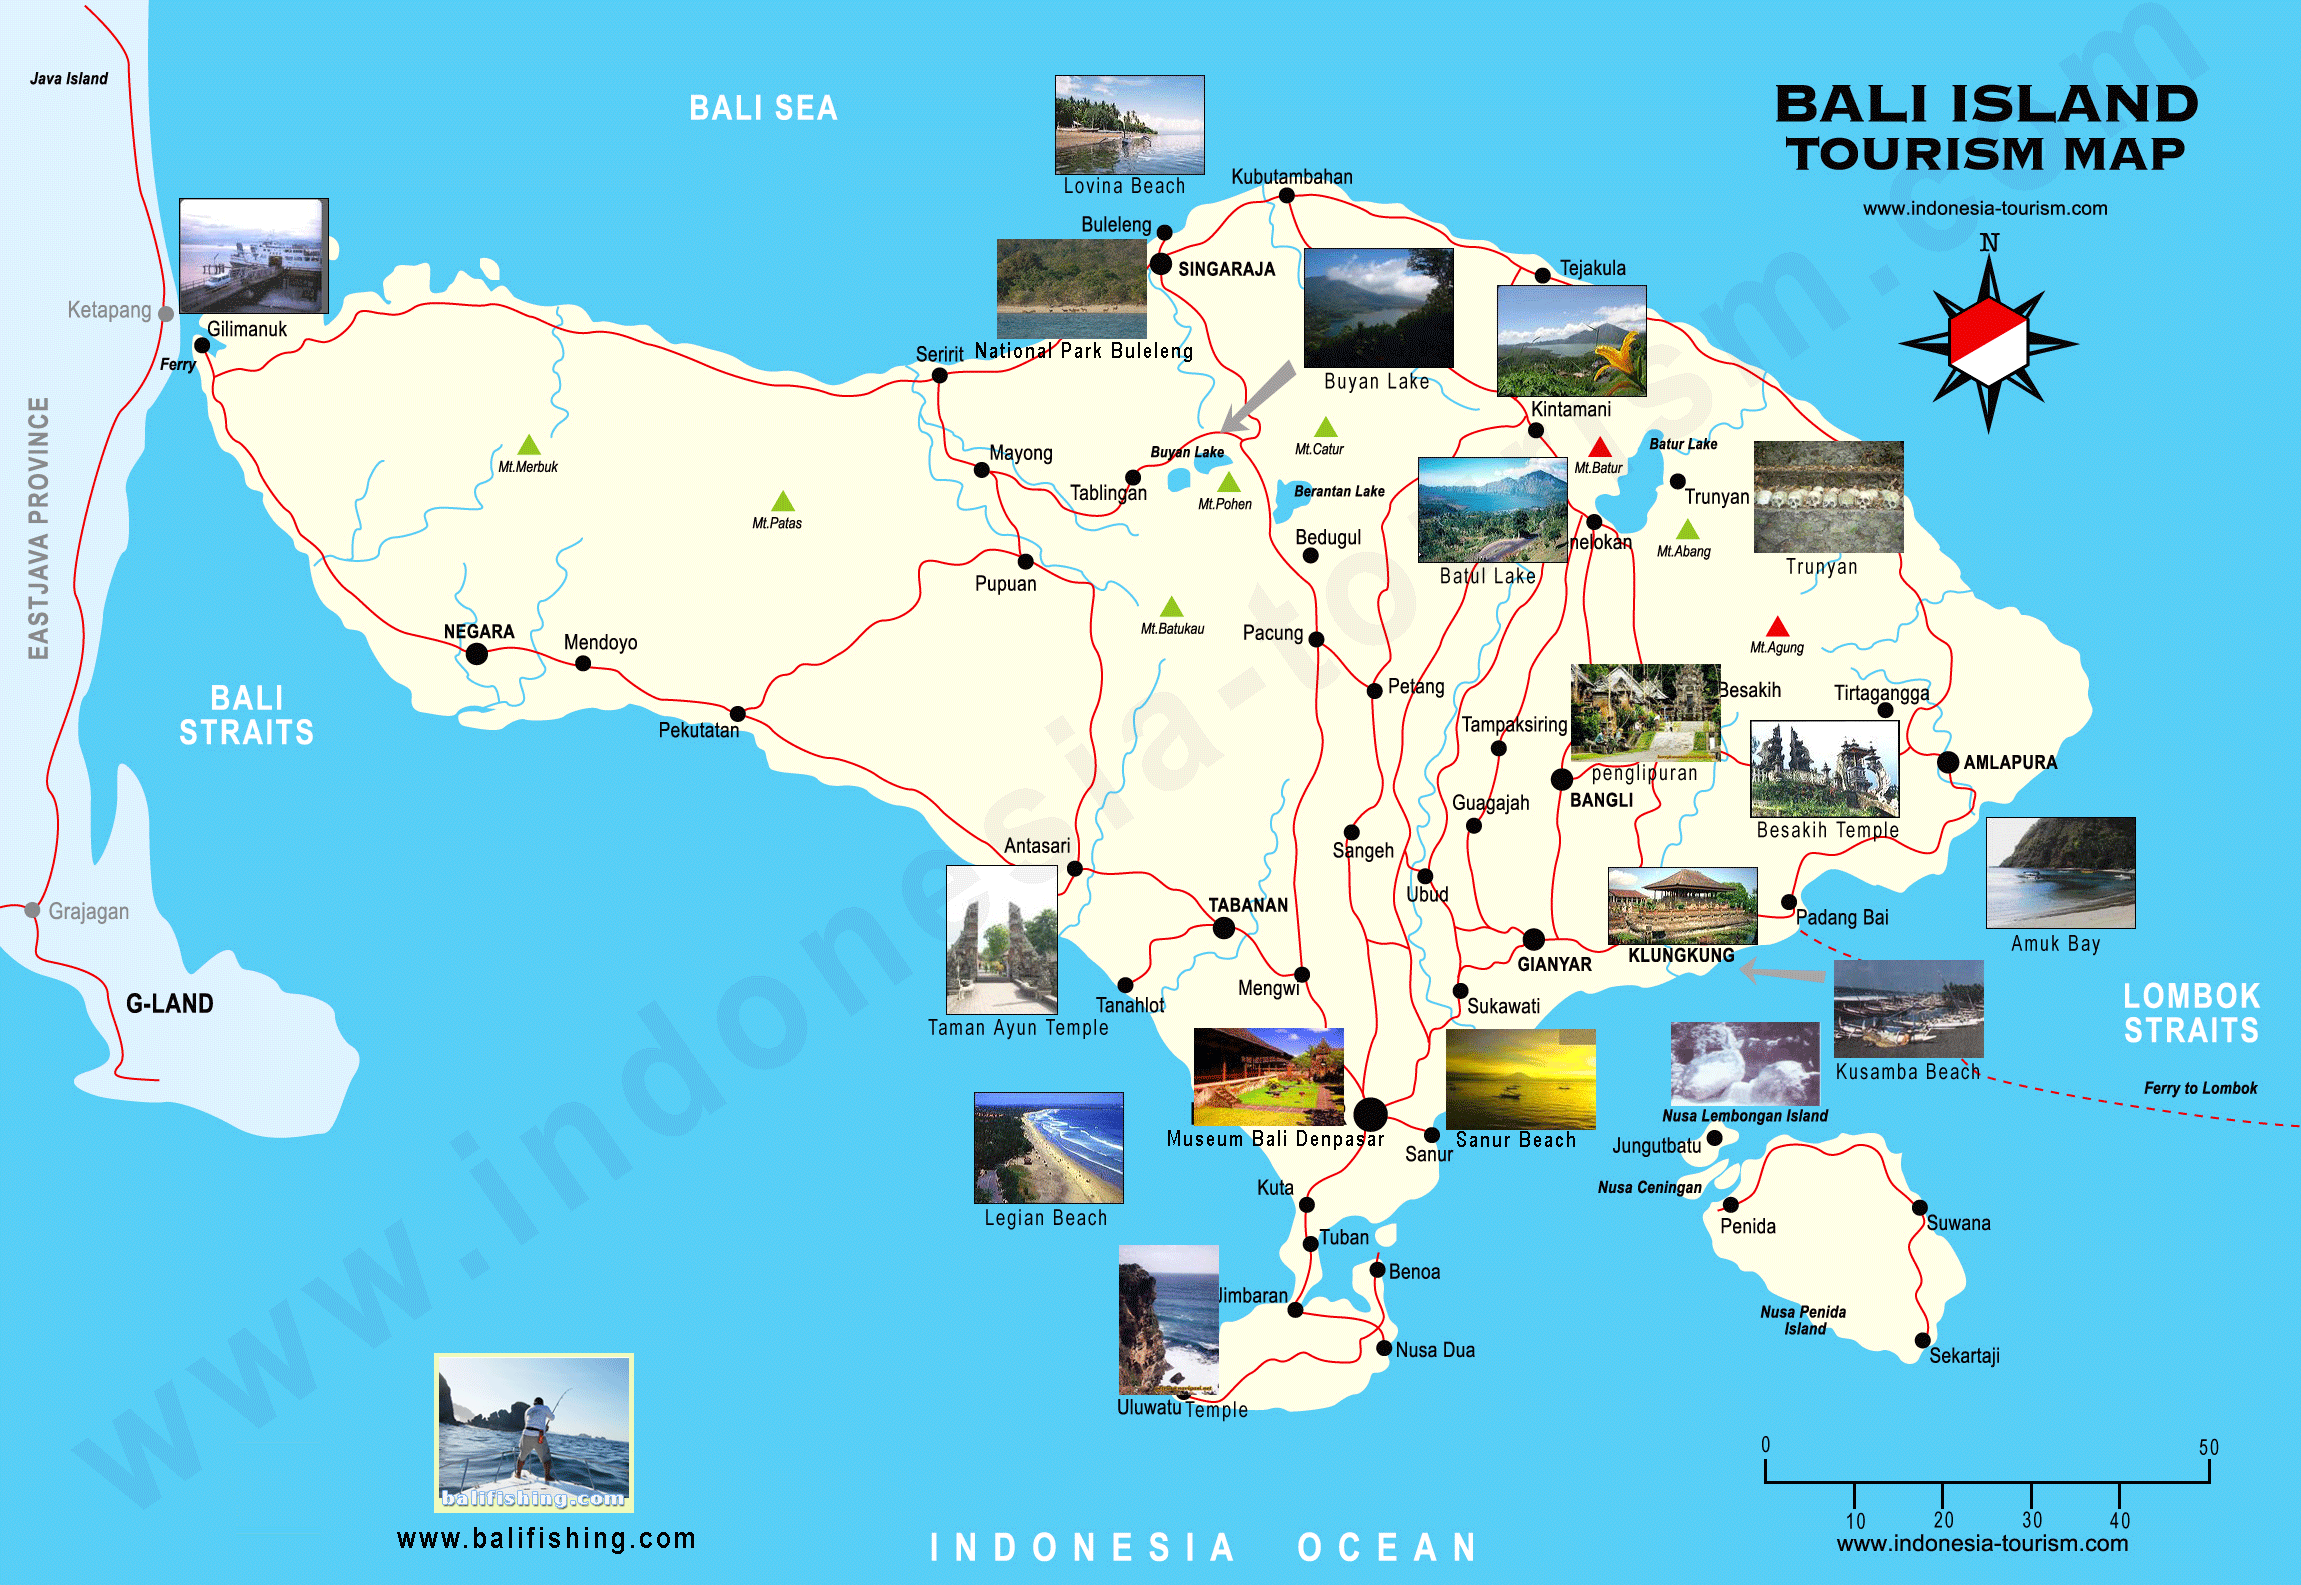 Bali map high inside your mind published september 13 2011 at 2301 1585 in bali gumiabroncs Images